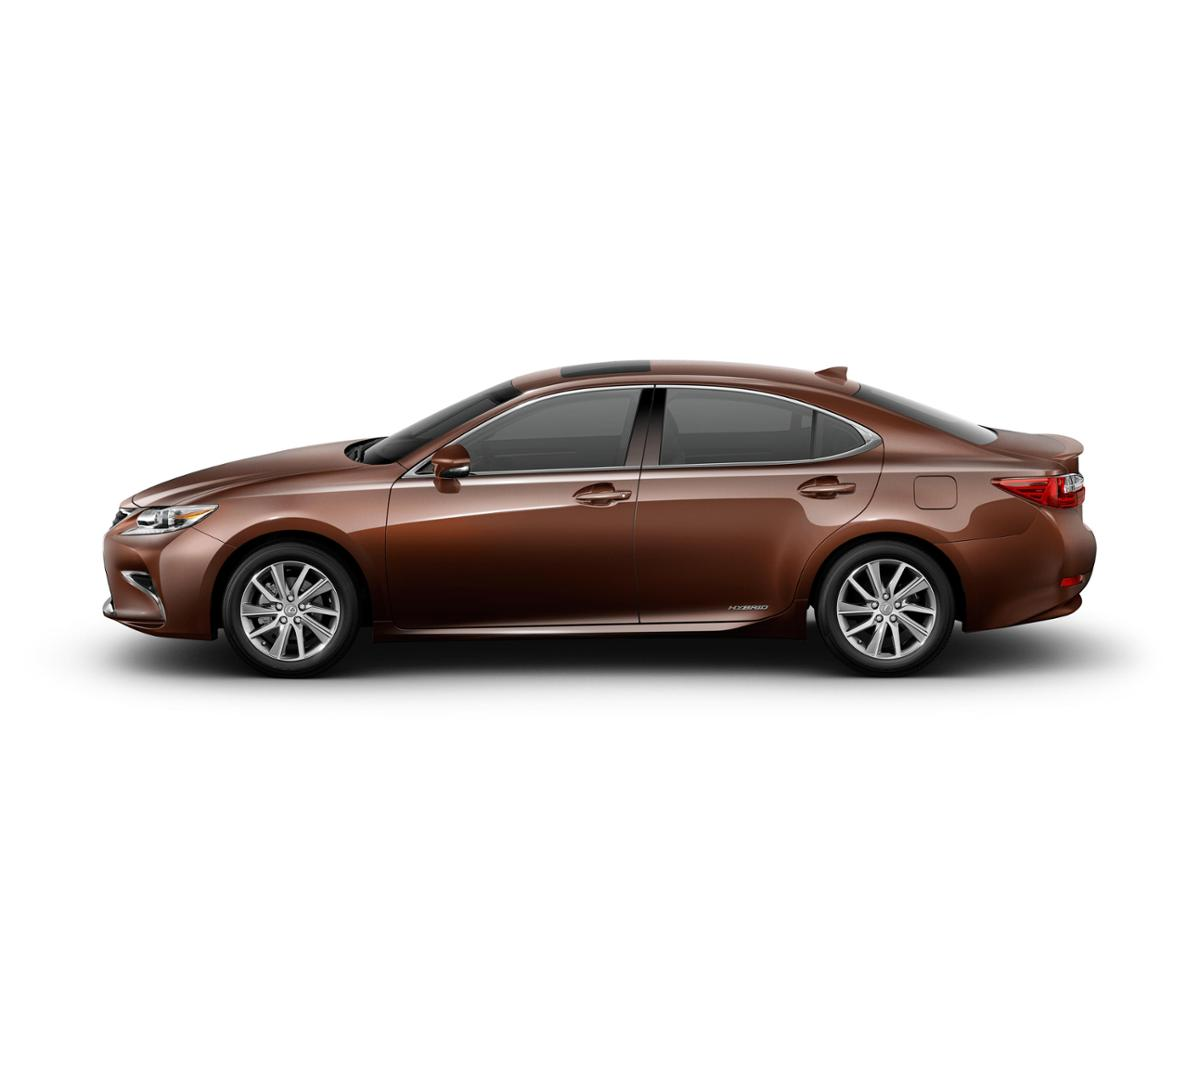 2017 Lexus ES 300h Vehicle Photo in Santa Monica, CA 90404